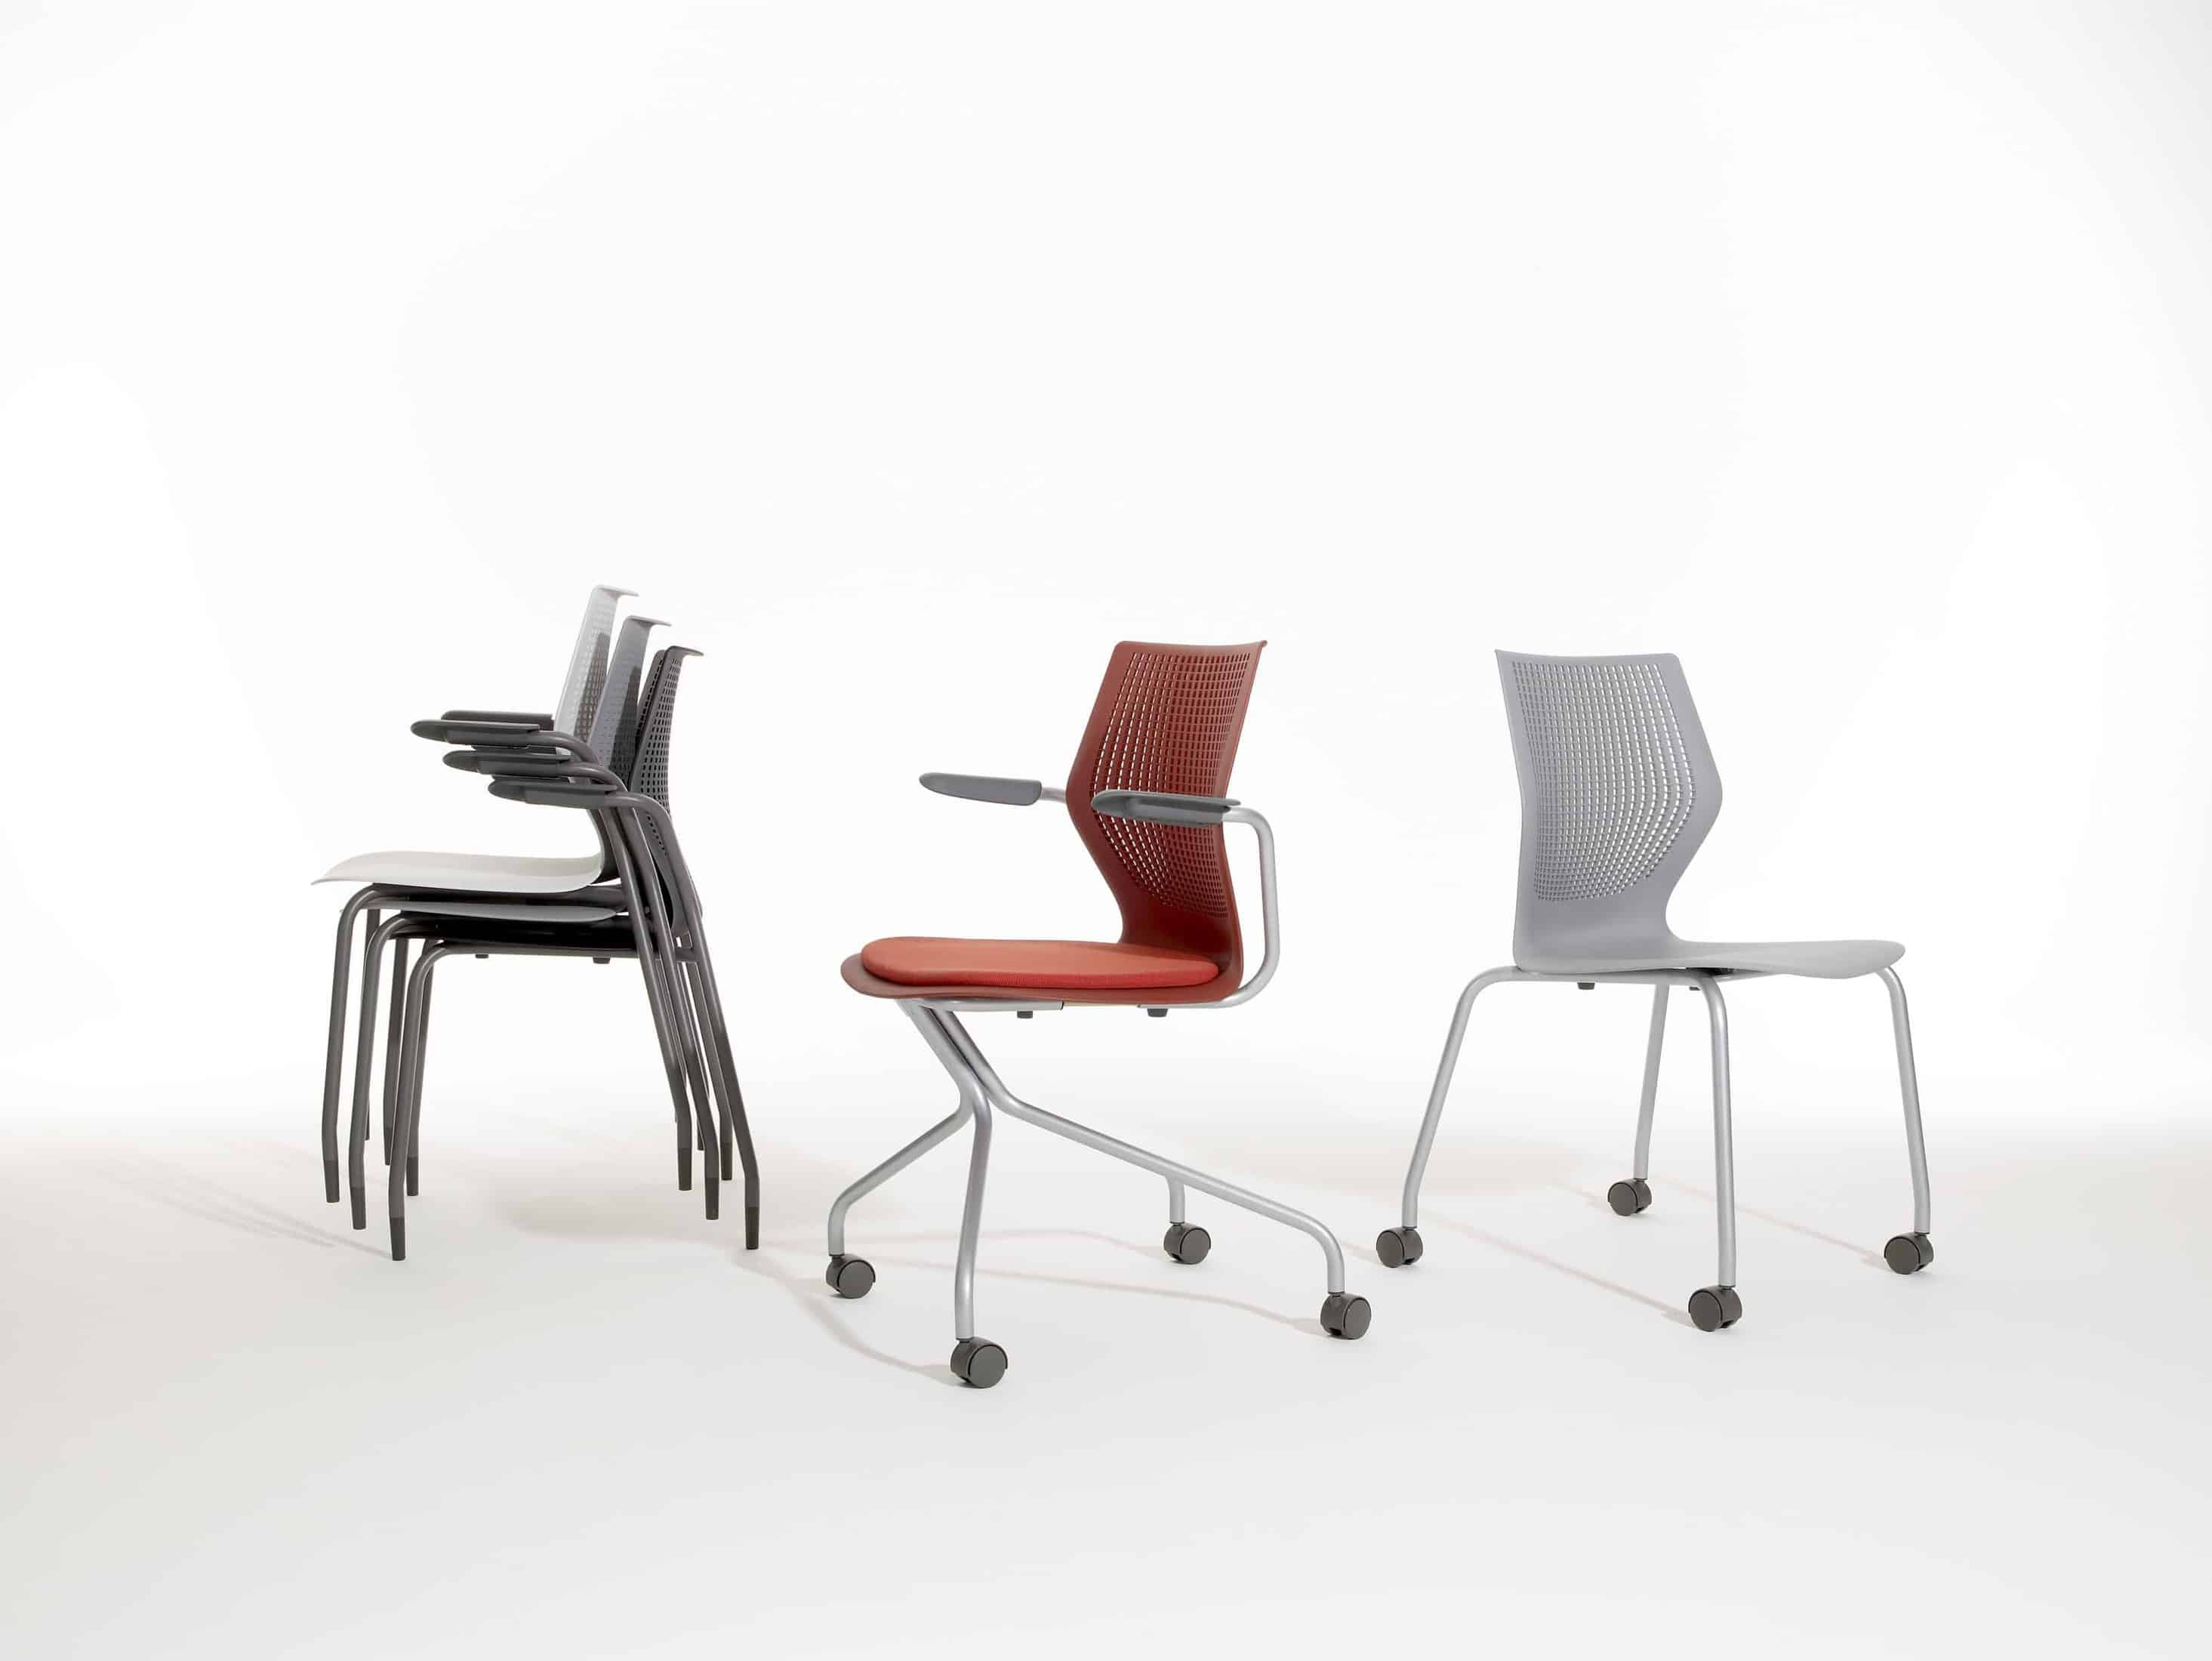 knoll office furniture technology a powerful workplace